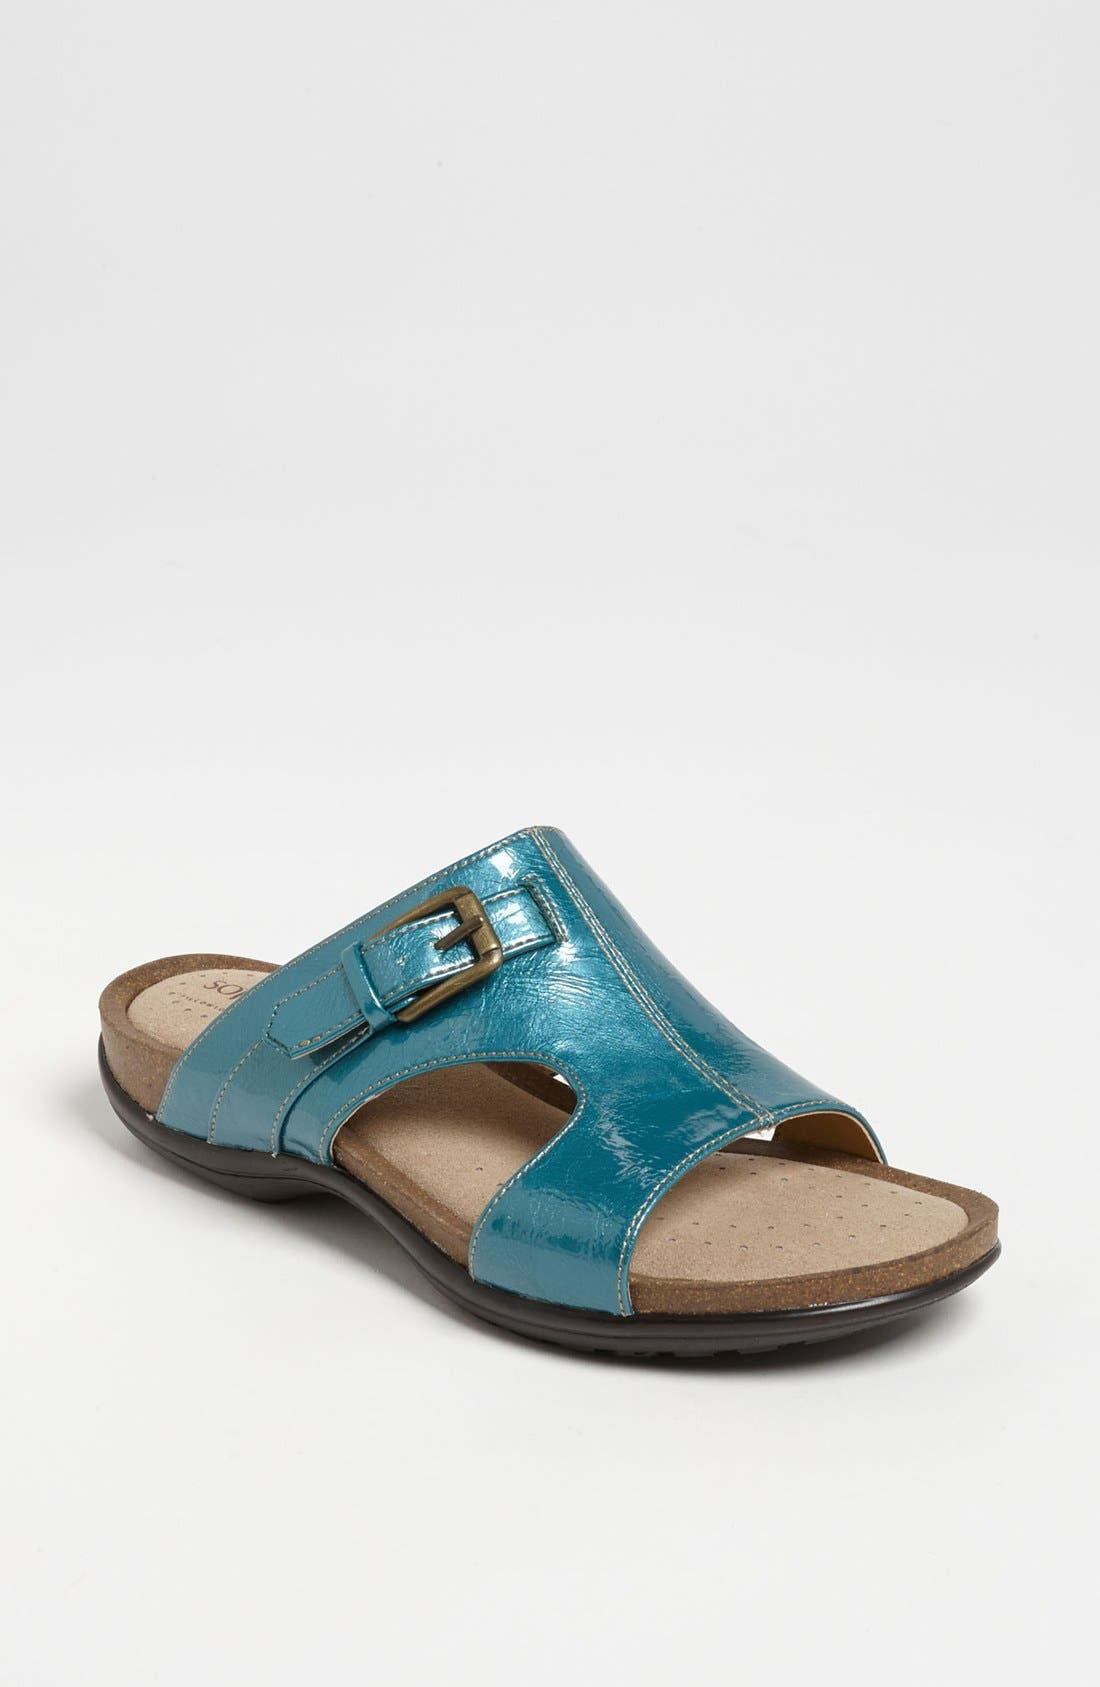 Alternate Image 1 Selected - Softspots 'Caileen' Sandal